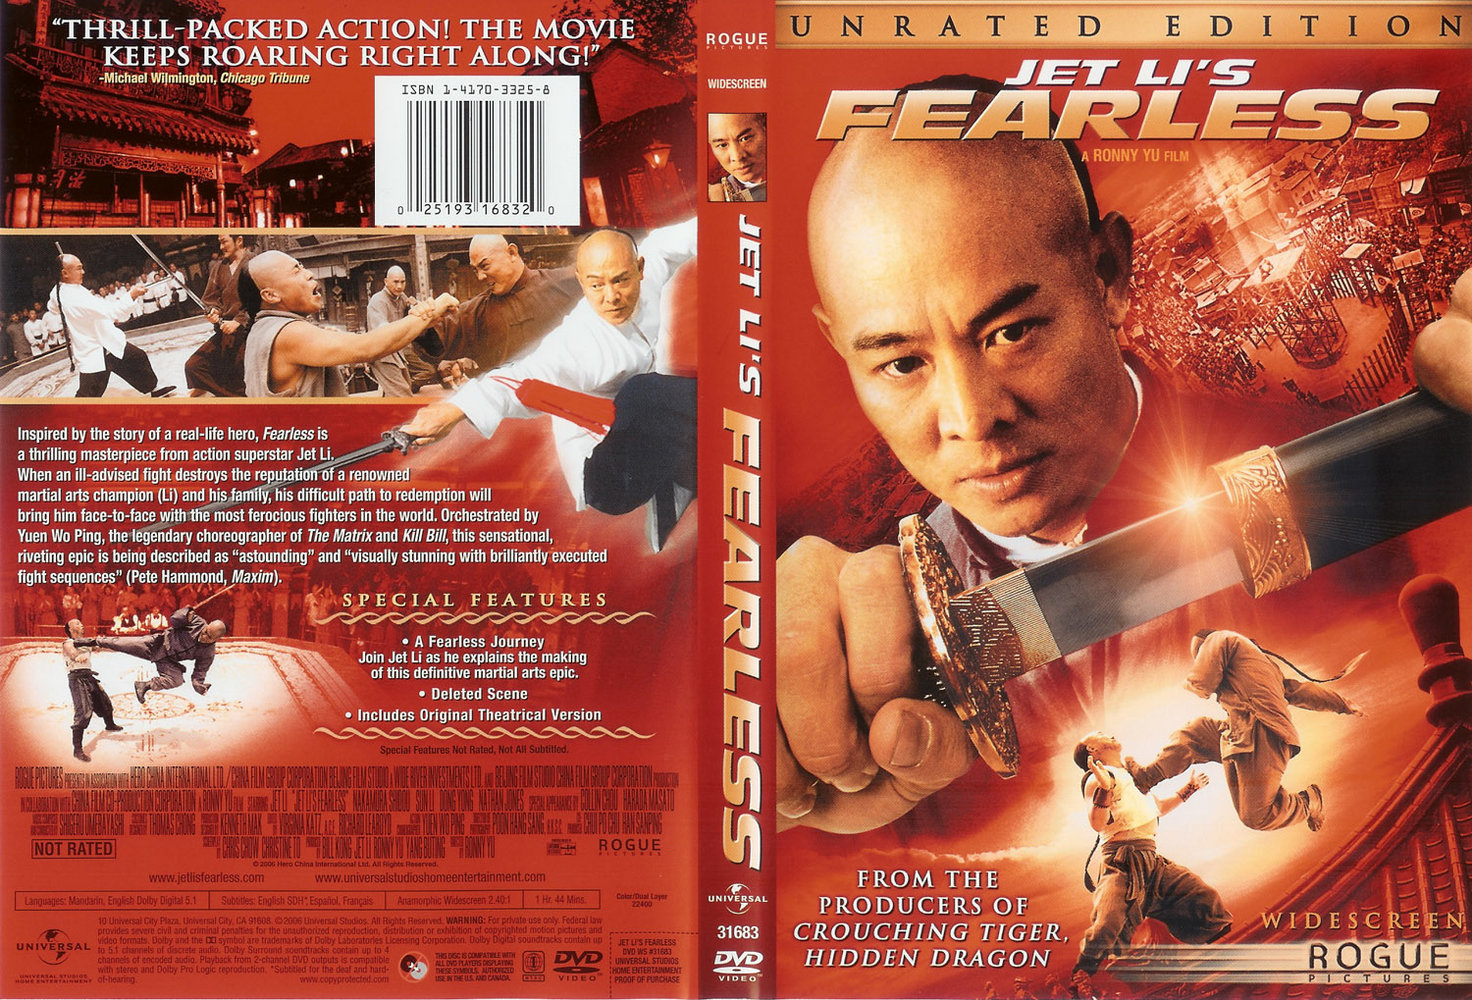 Jet li tai chi master full movie download.